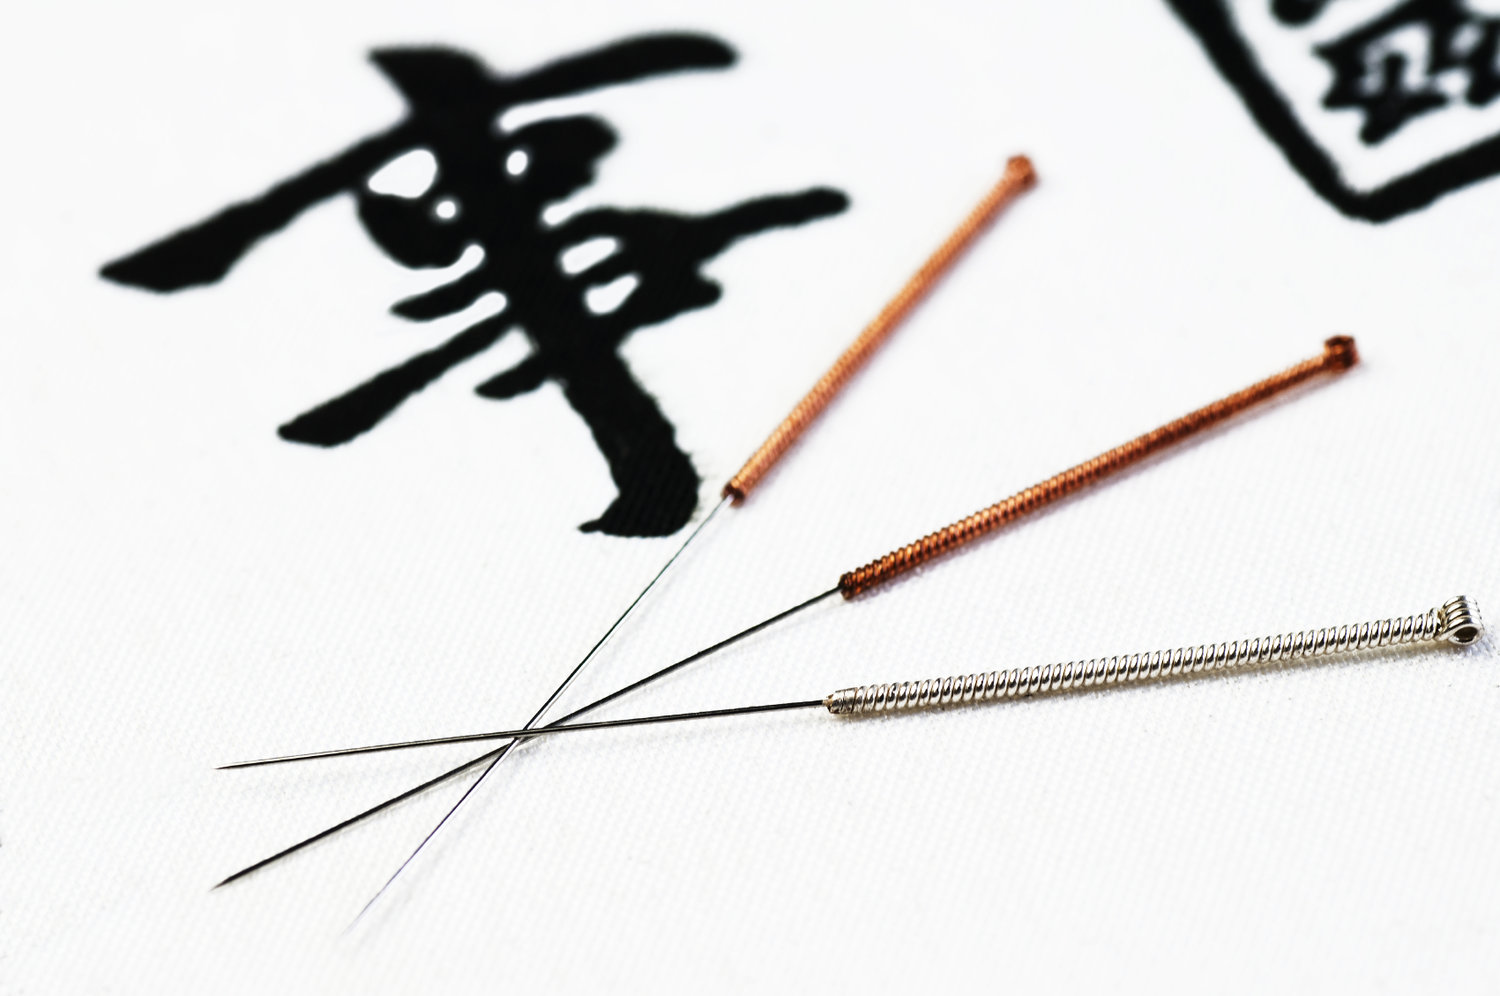 the living needle modern acupuncture technique